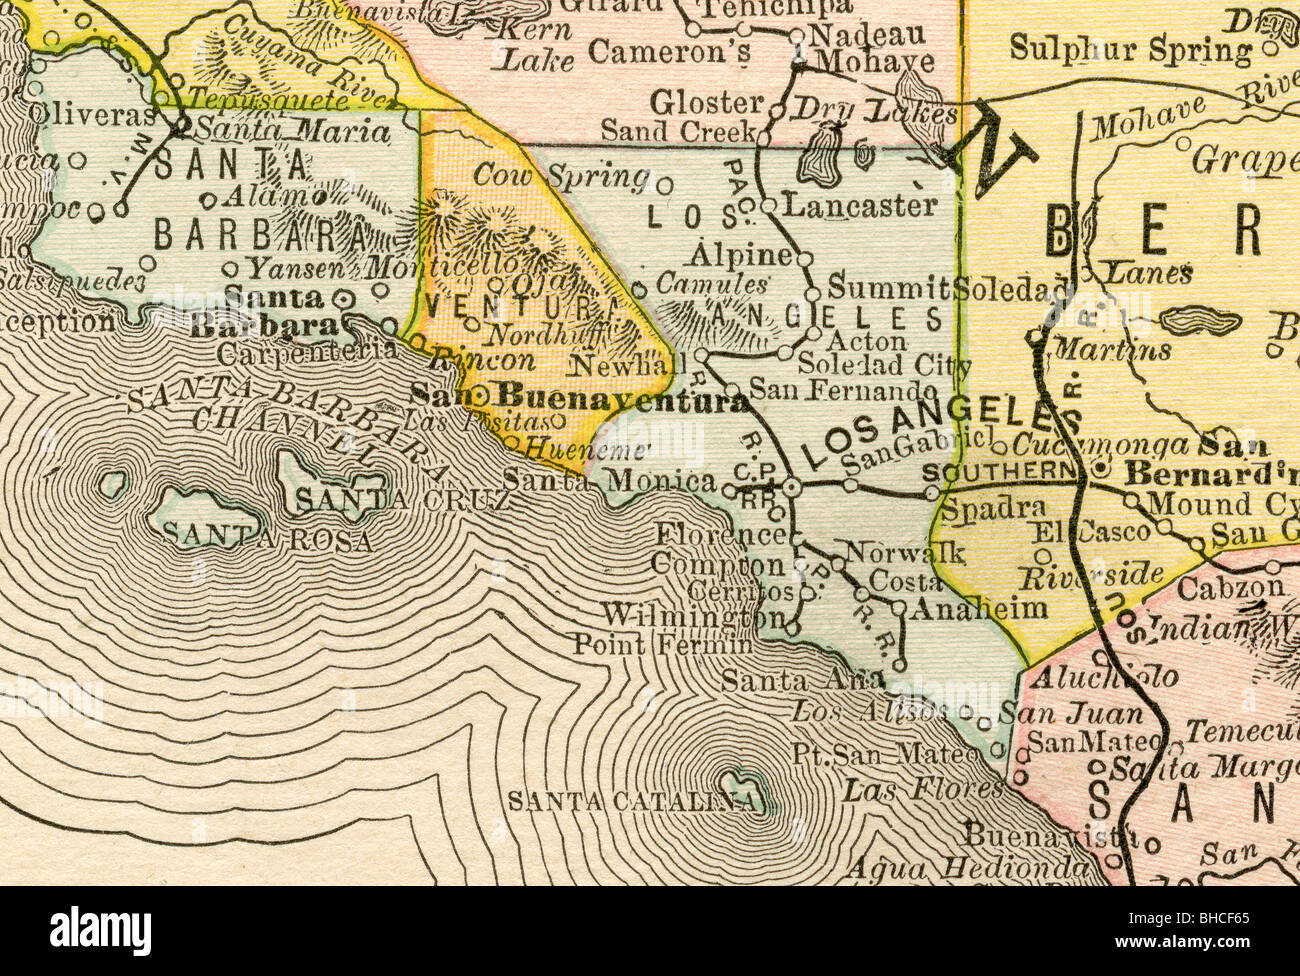 Original old map of Los Angeles area from 1884 geography textbook ...